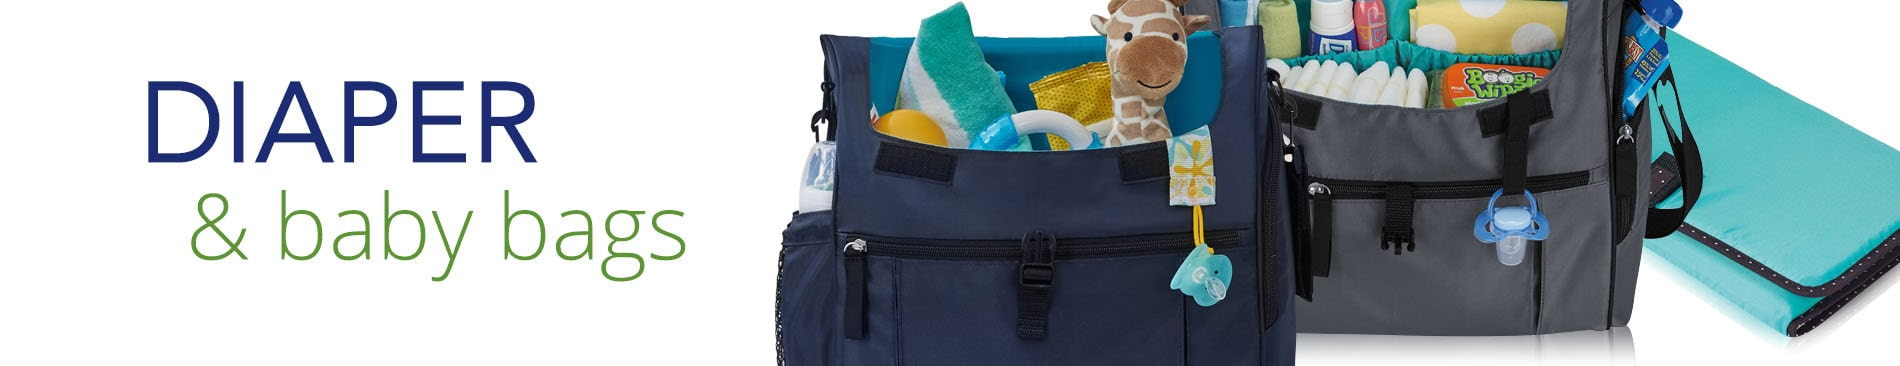 e64762781762 Promotional Diaper Bags | Promotional Baby Bags | Promotions Now